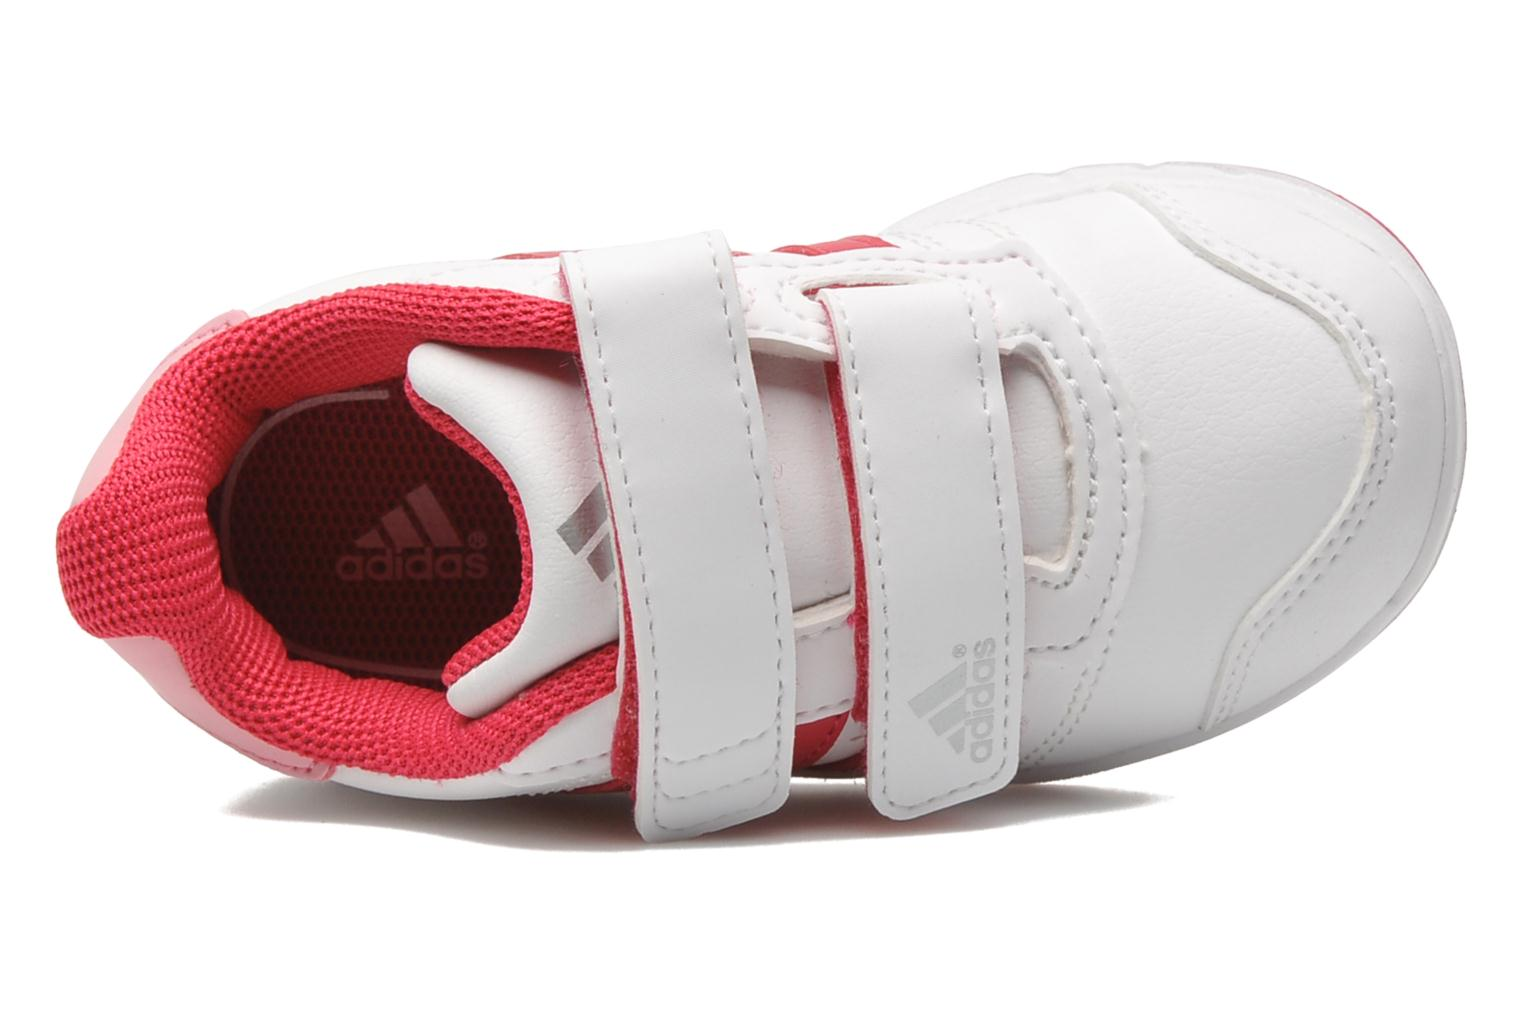 LK Trainer 5 CF I RUNNING WHITE FTW / VIVID BERRY S14 / CLEAR LIGHT PINK S12